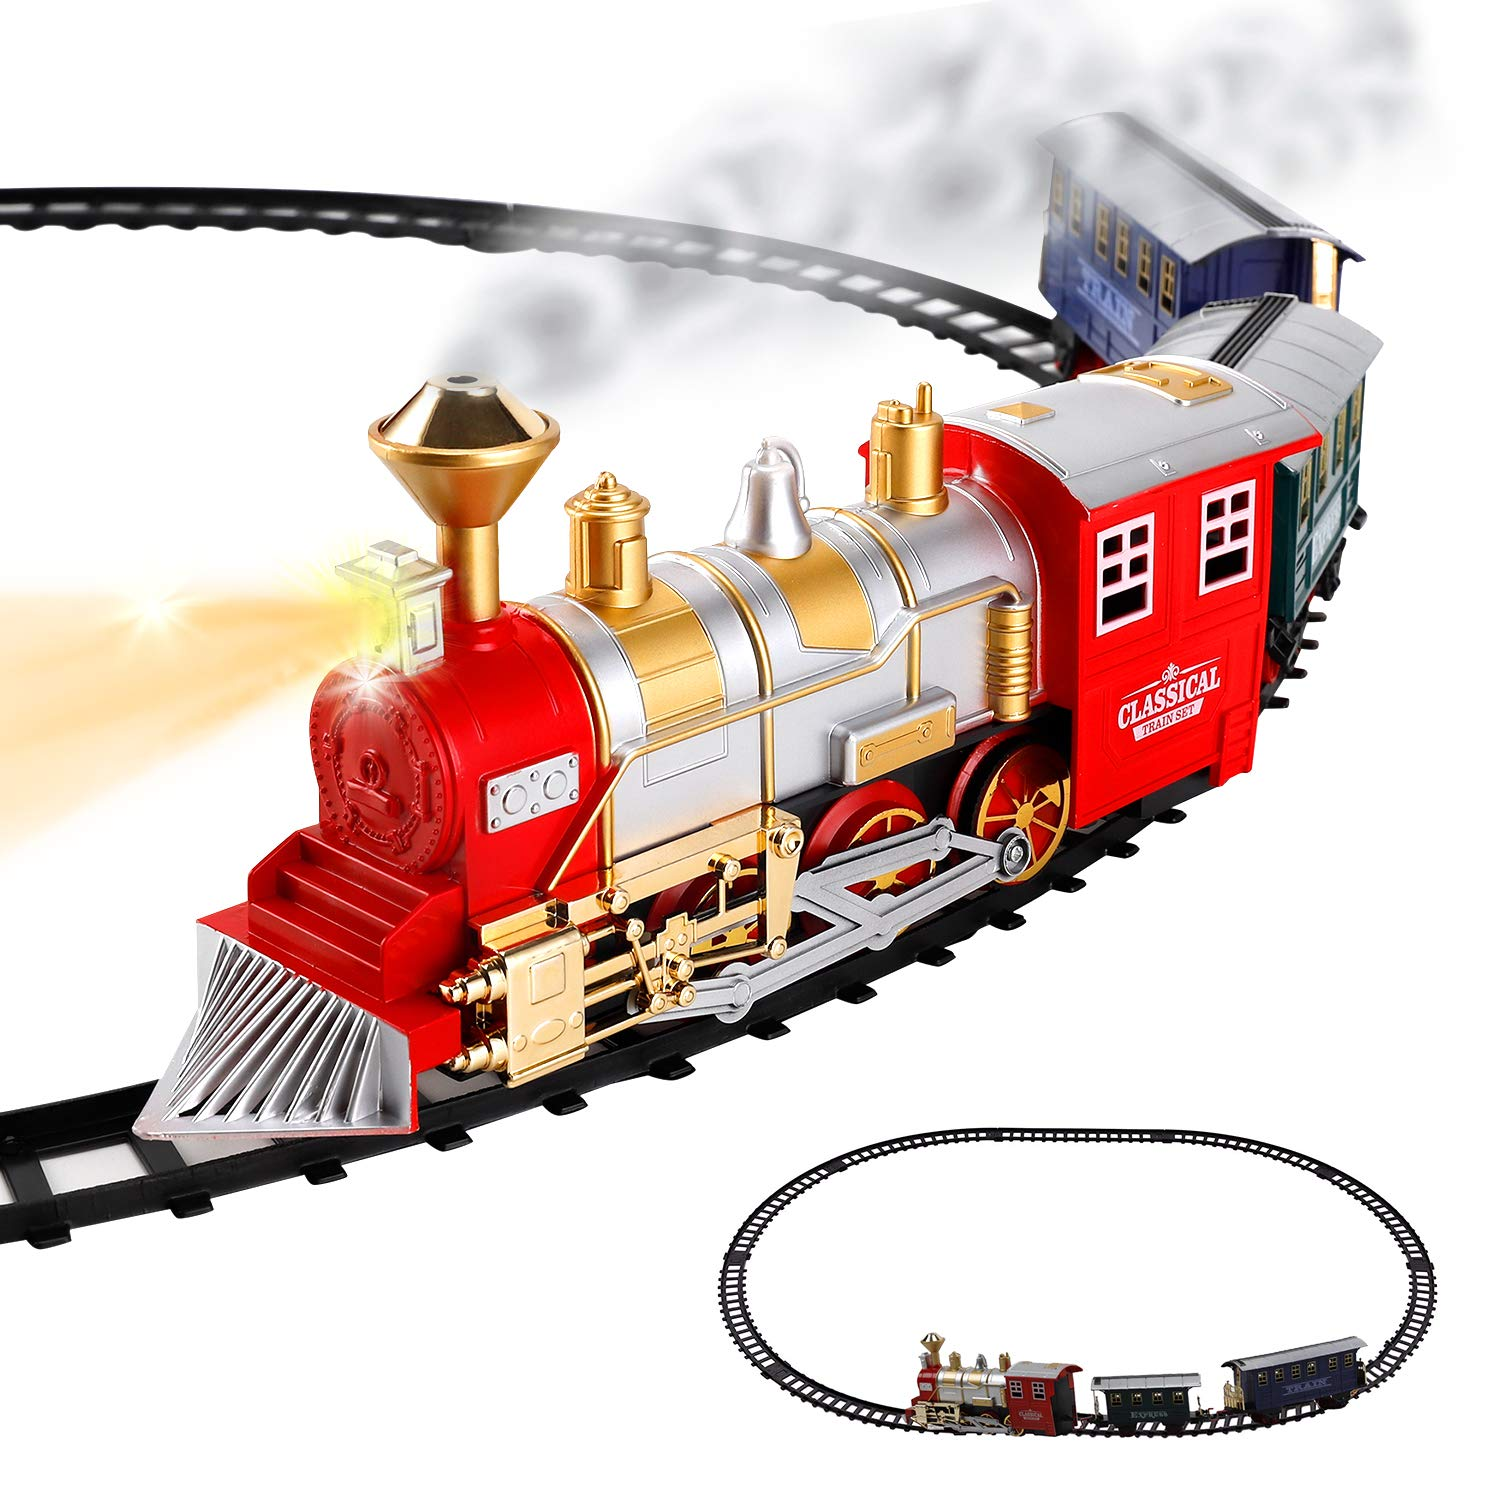 Classic Train Set for Kids with Smoke, Realistic Sounds, 3 Cars and 11 Feet of Tracks (13 pcs) colors may vary by Liberty Imports